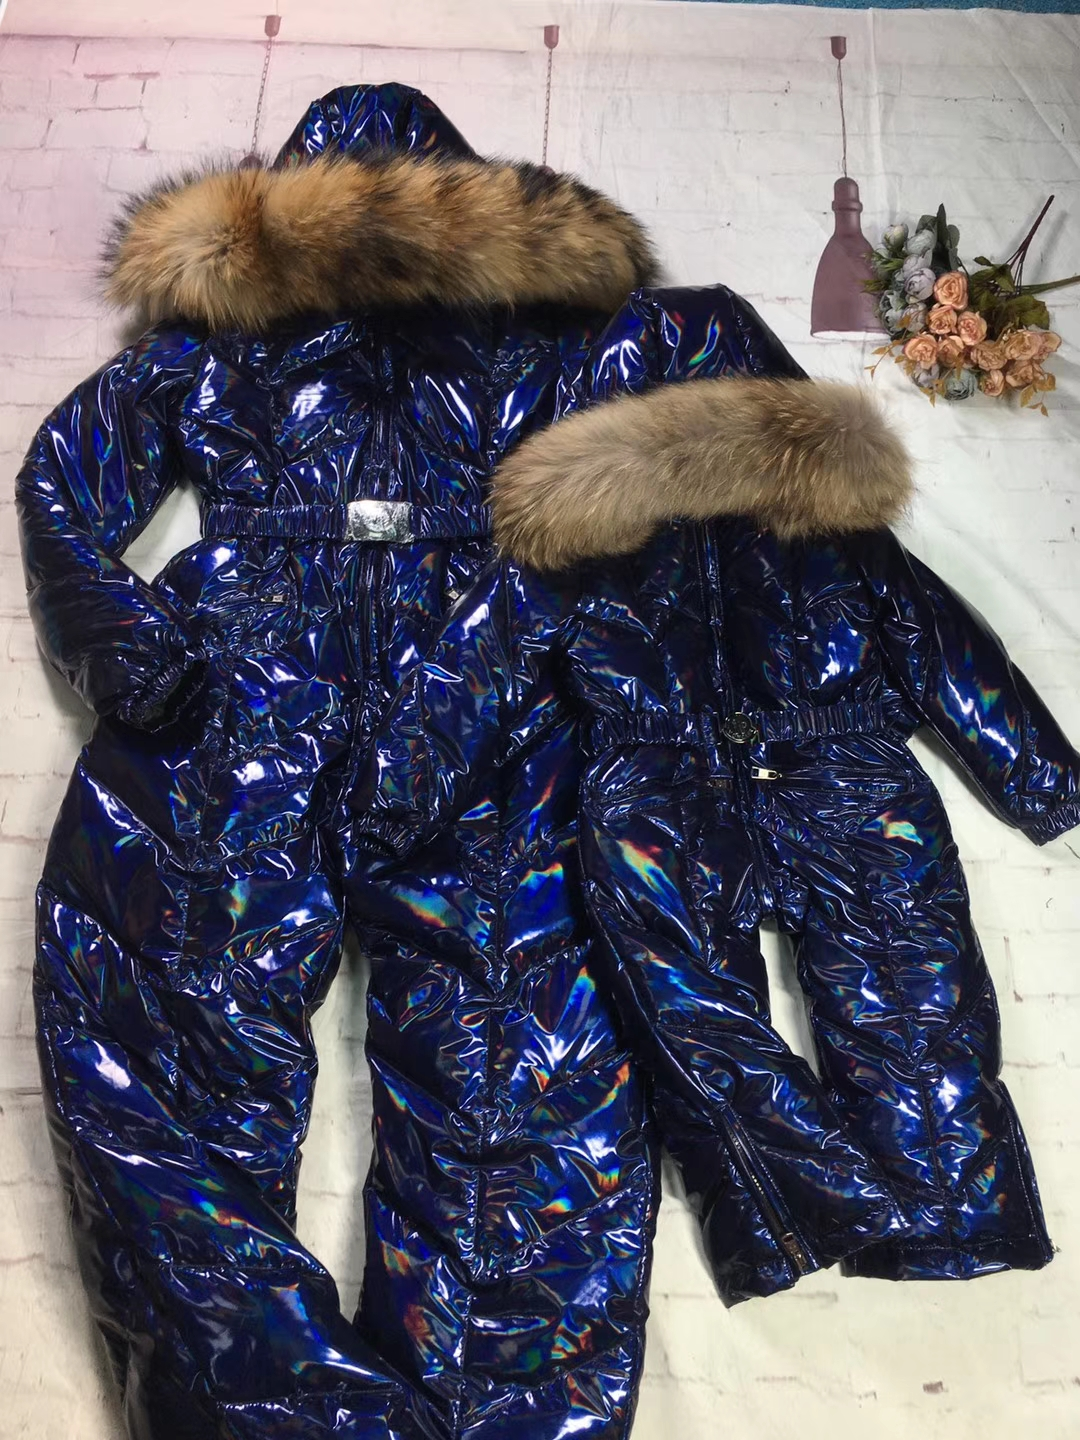 Real Fur 2019 Winter Jacket Mother Child Jackets Children Jumpsuit Snow Suit Family Overall Down Romper Ski Suits Outerwear